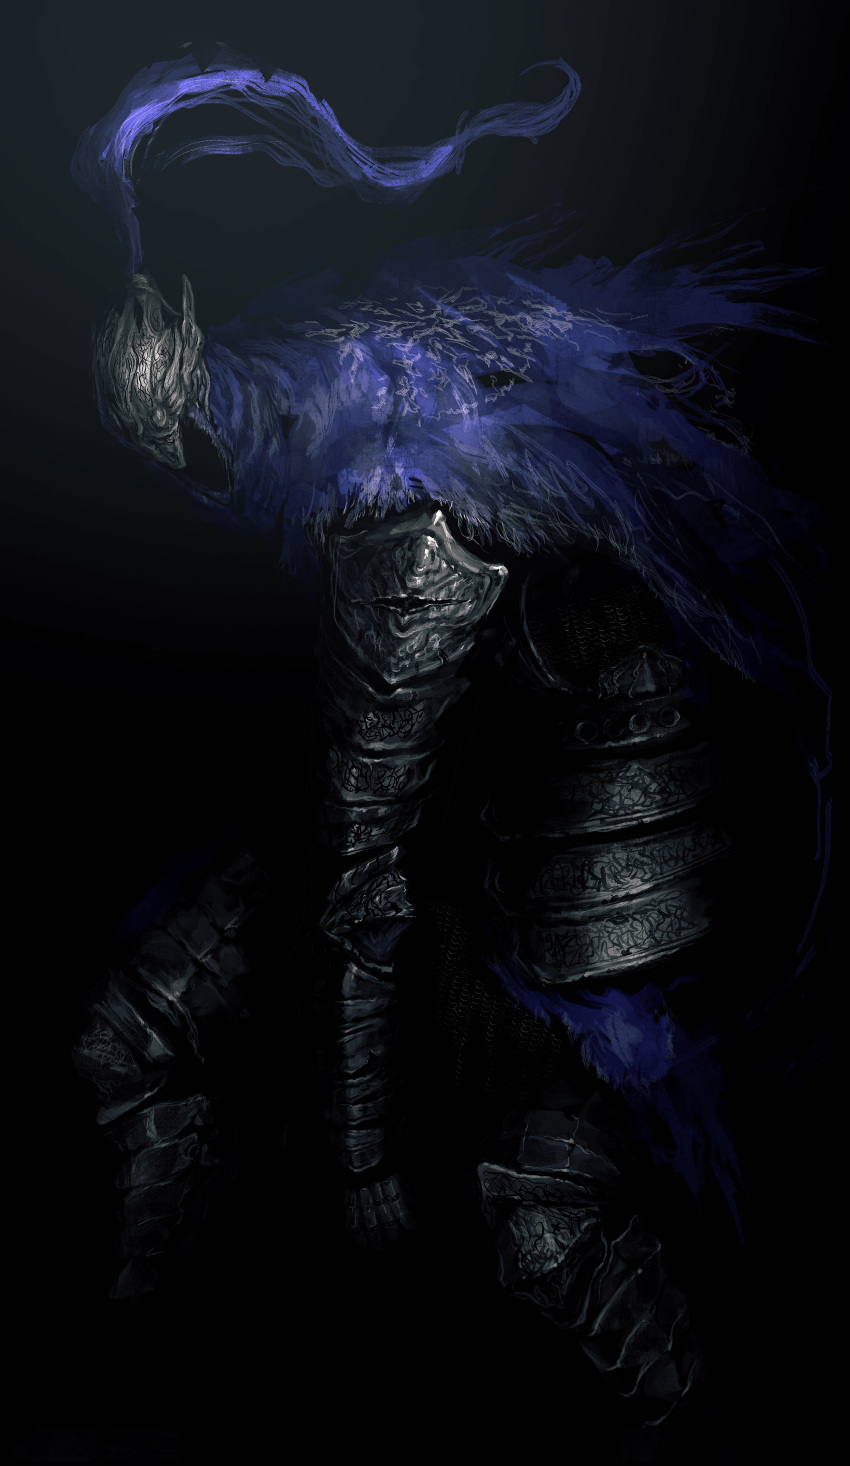 1boy absurdres armor artorias_the_abysswalker black_background cape commentary_request dark dark_souls facing_viewer full_armor gauntlets helmet highres ibuo_(ibukht1015) knight shoulder_armor solo souls_(from_software) sword torn_cape torn_clothes weapon